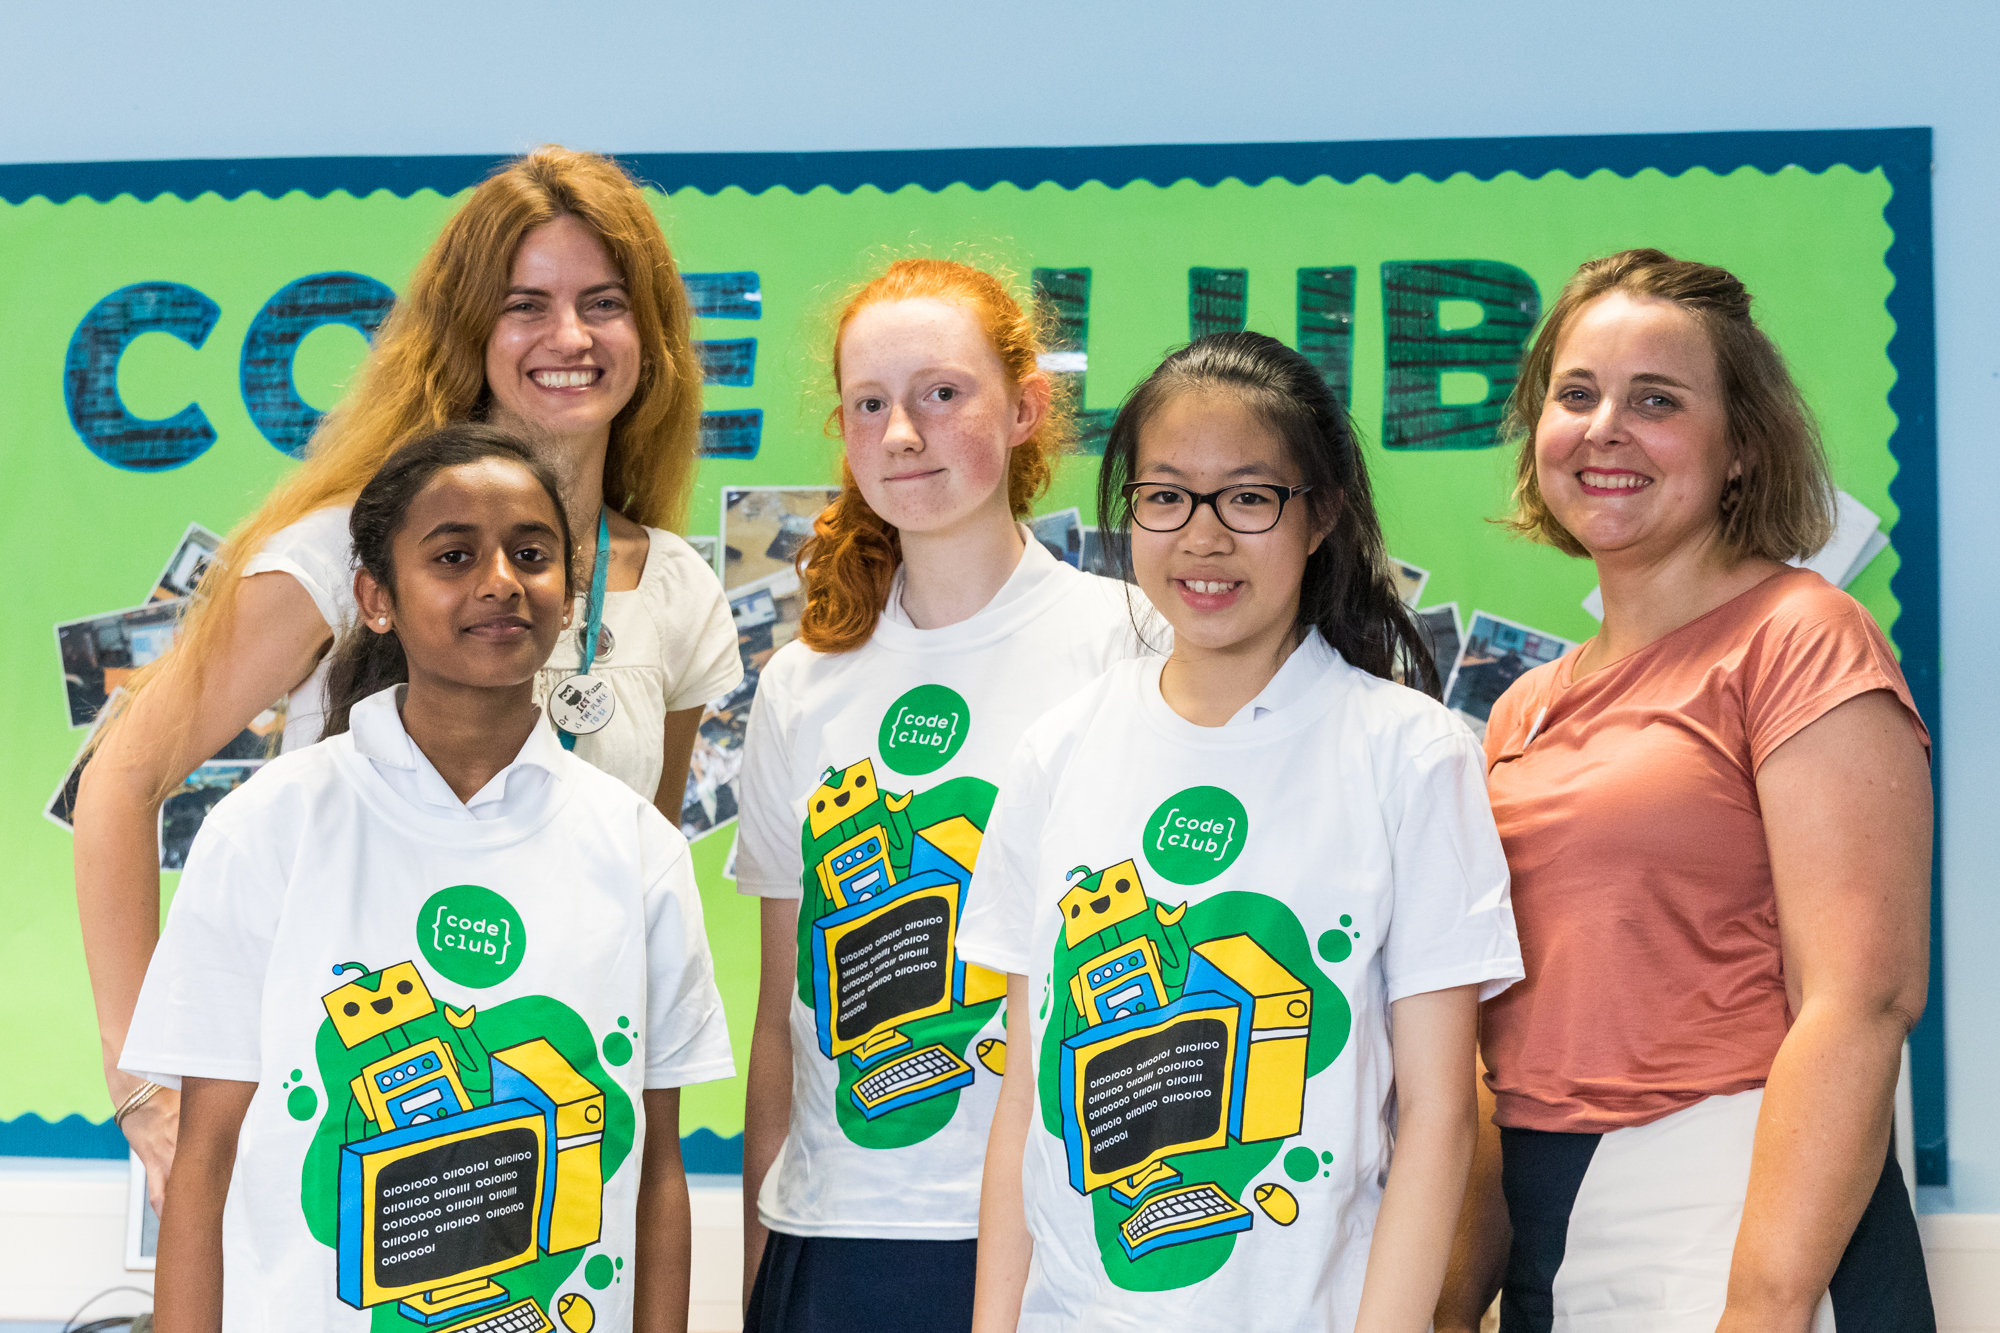 Sophie, Arani, and Emily with their teacher Ms Pizzorni and Zoe from Code Club.